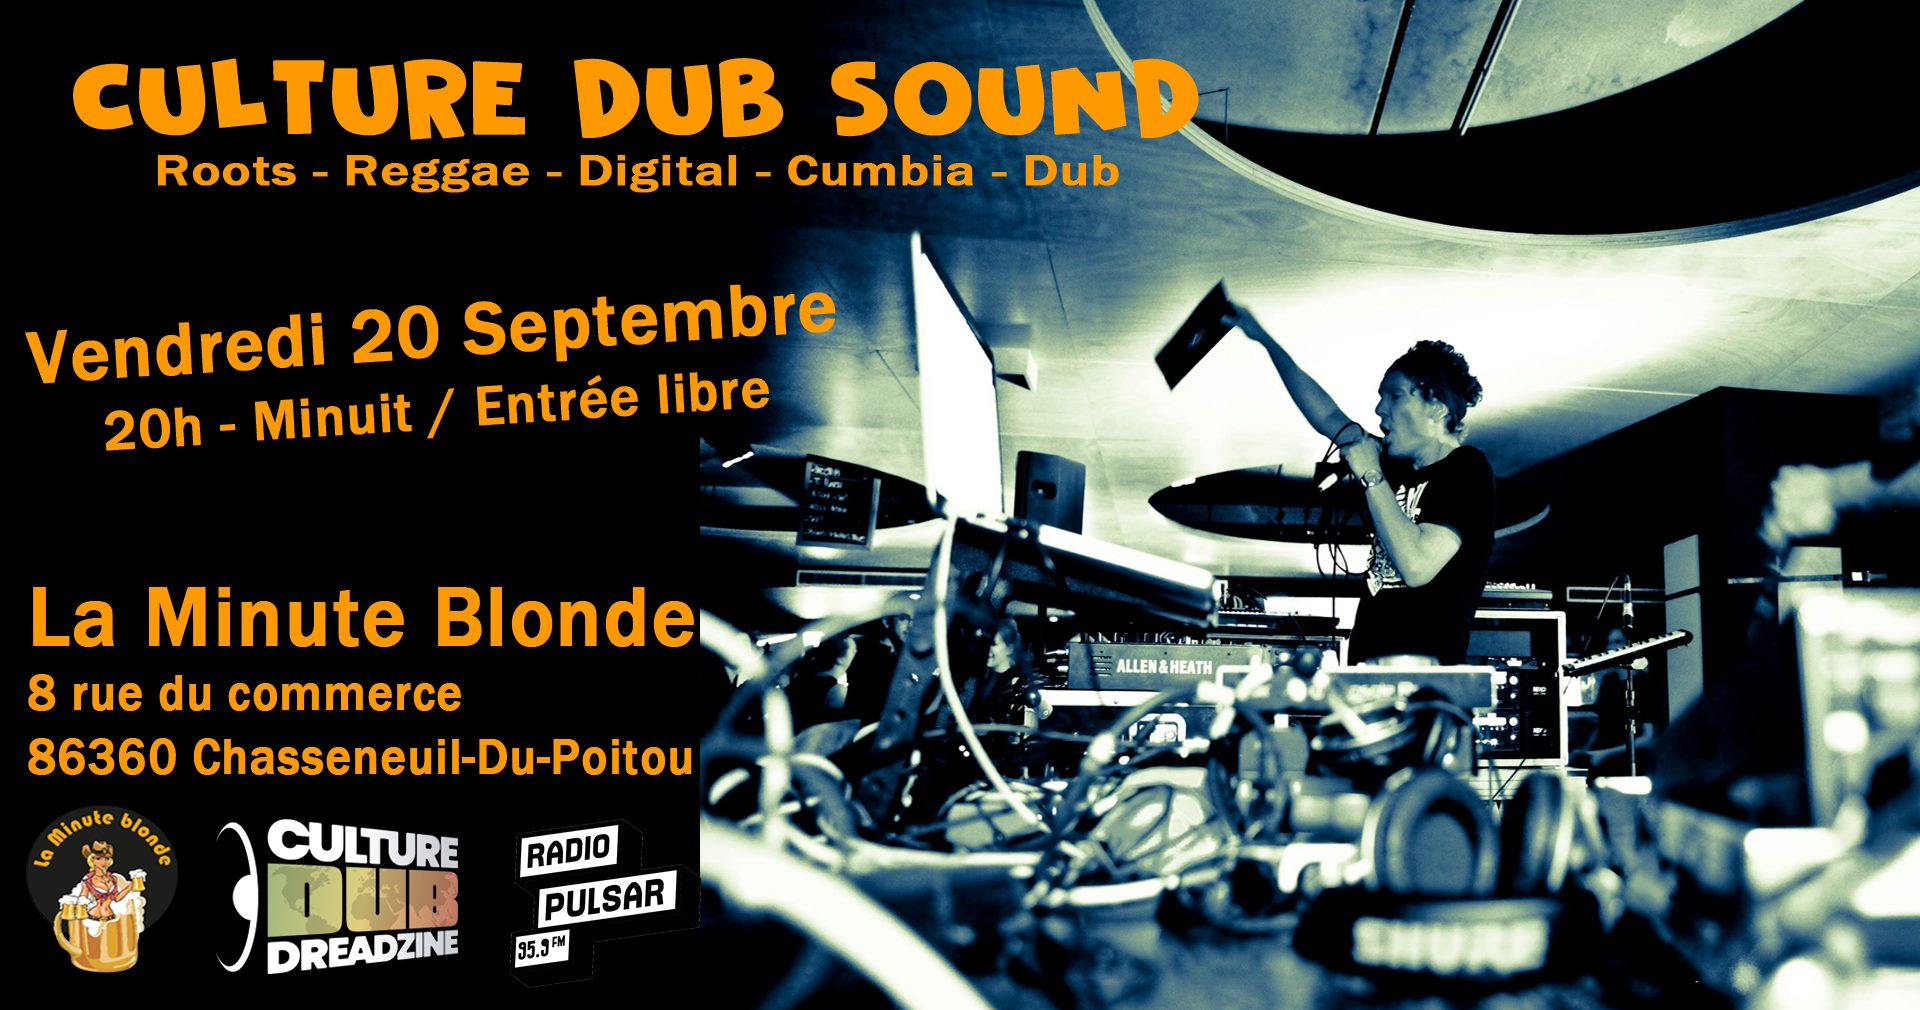 Culture Dub Show –  22 Octobre 2013 – Radio Pulsar